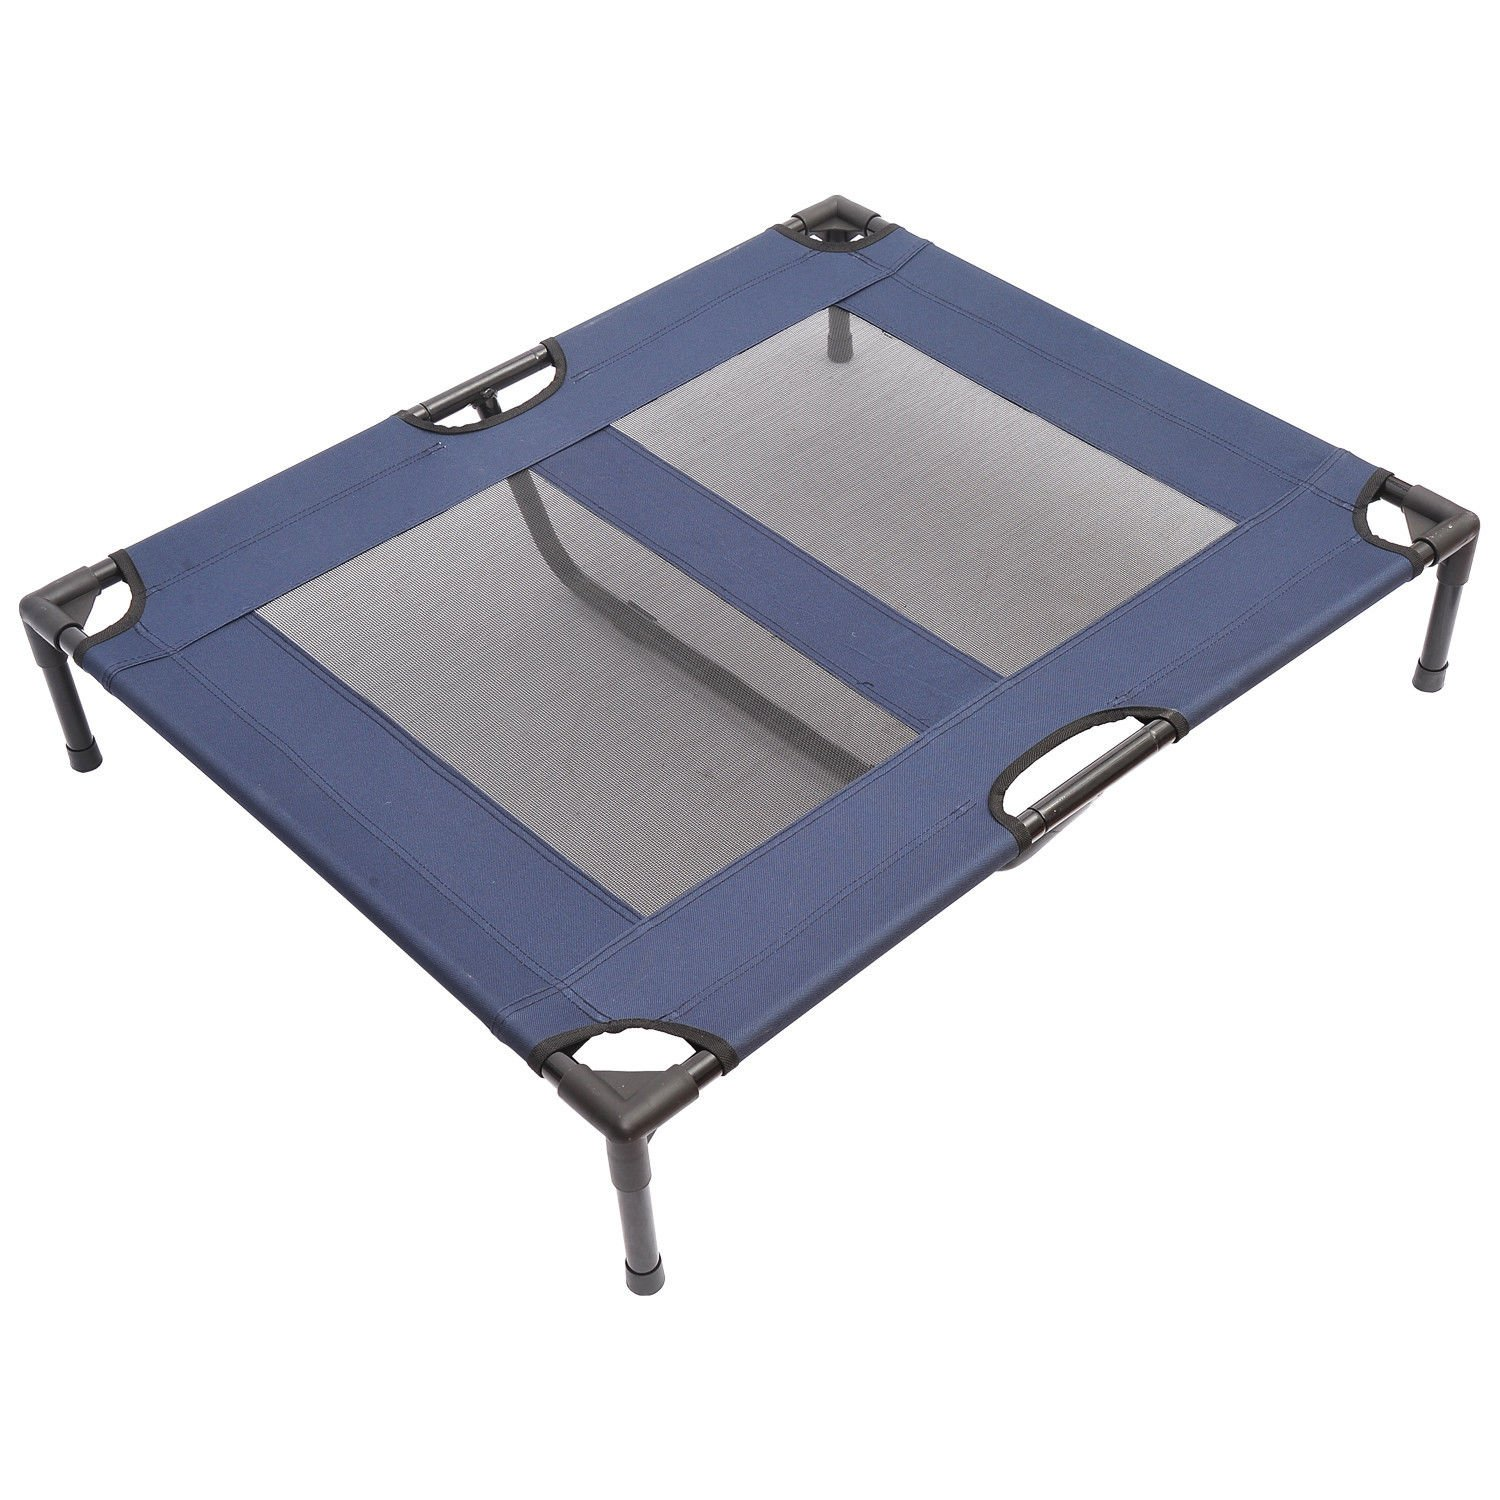 PawHut 36'' x 30'' Elevated Dog Bed/Pet Cot - Blue